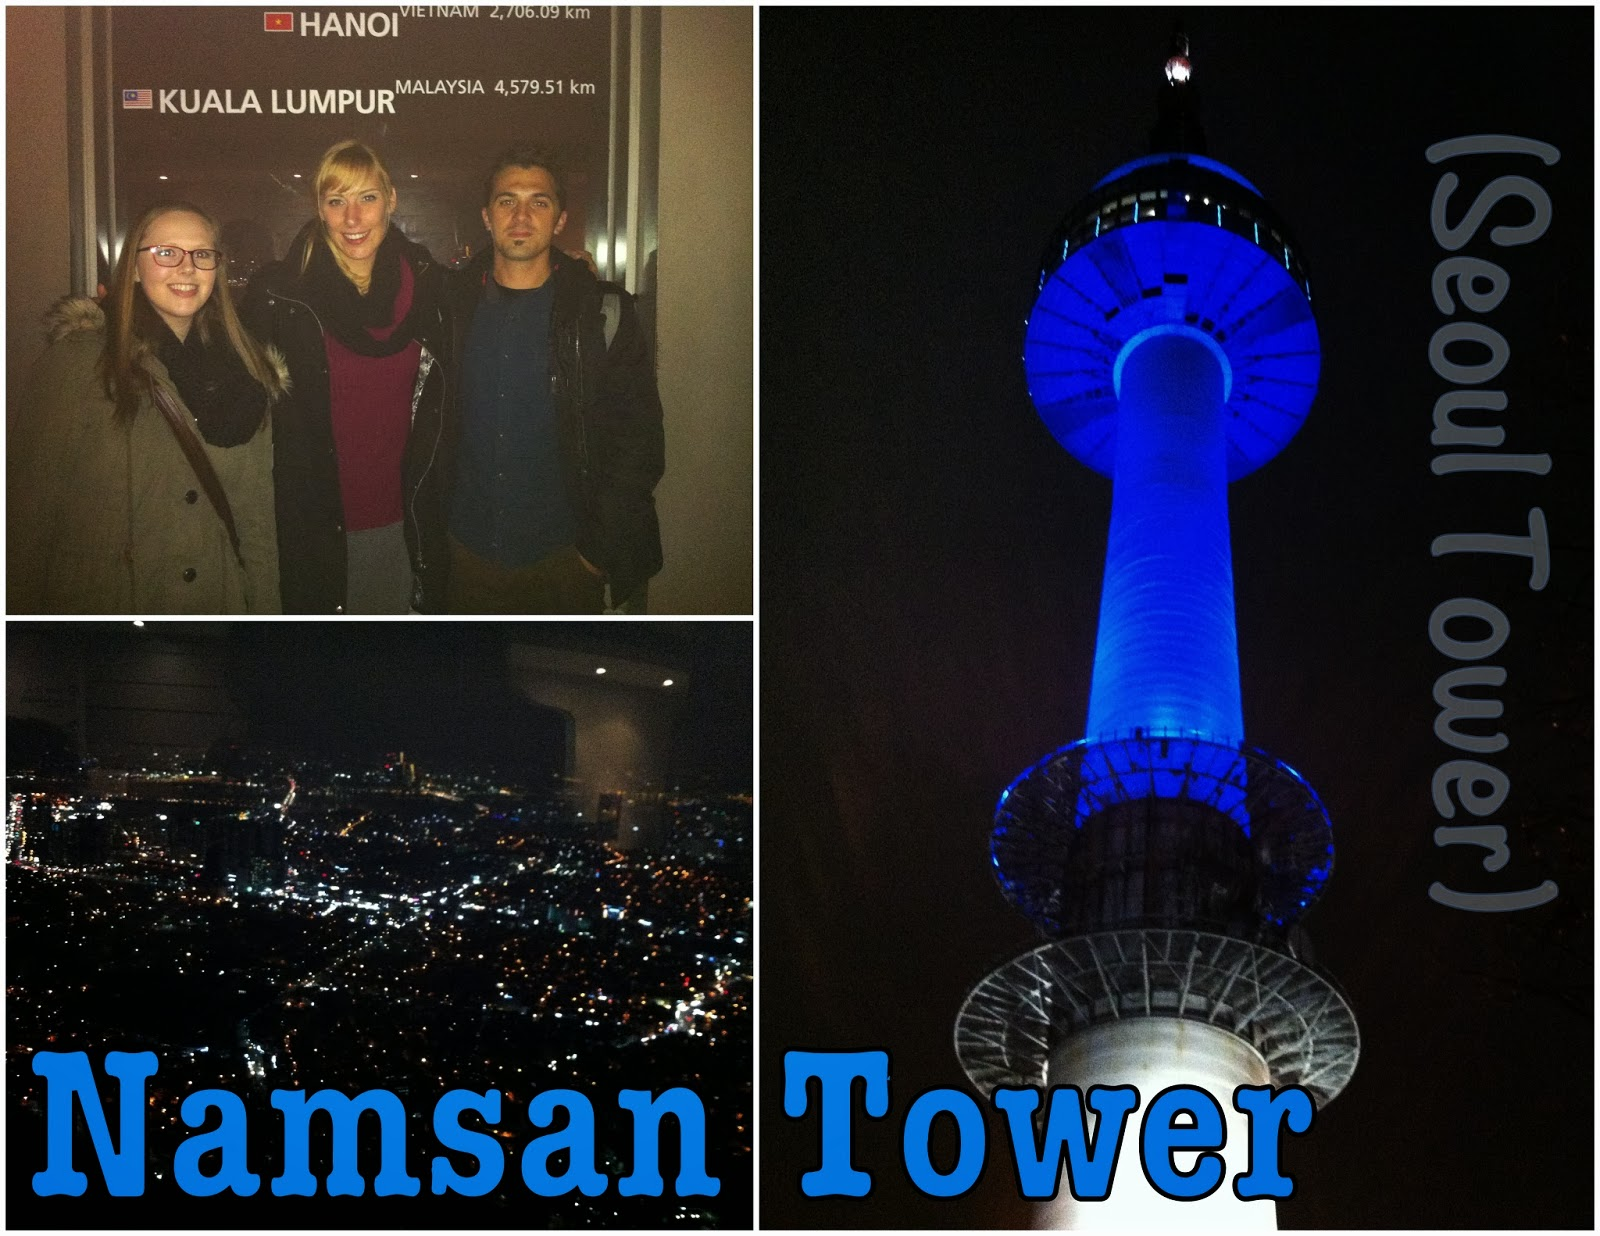 N Seoul Tower Namsan